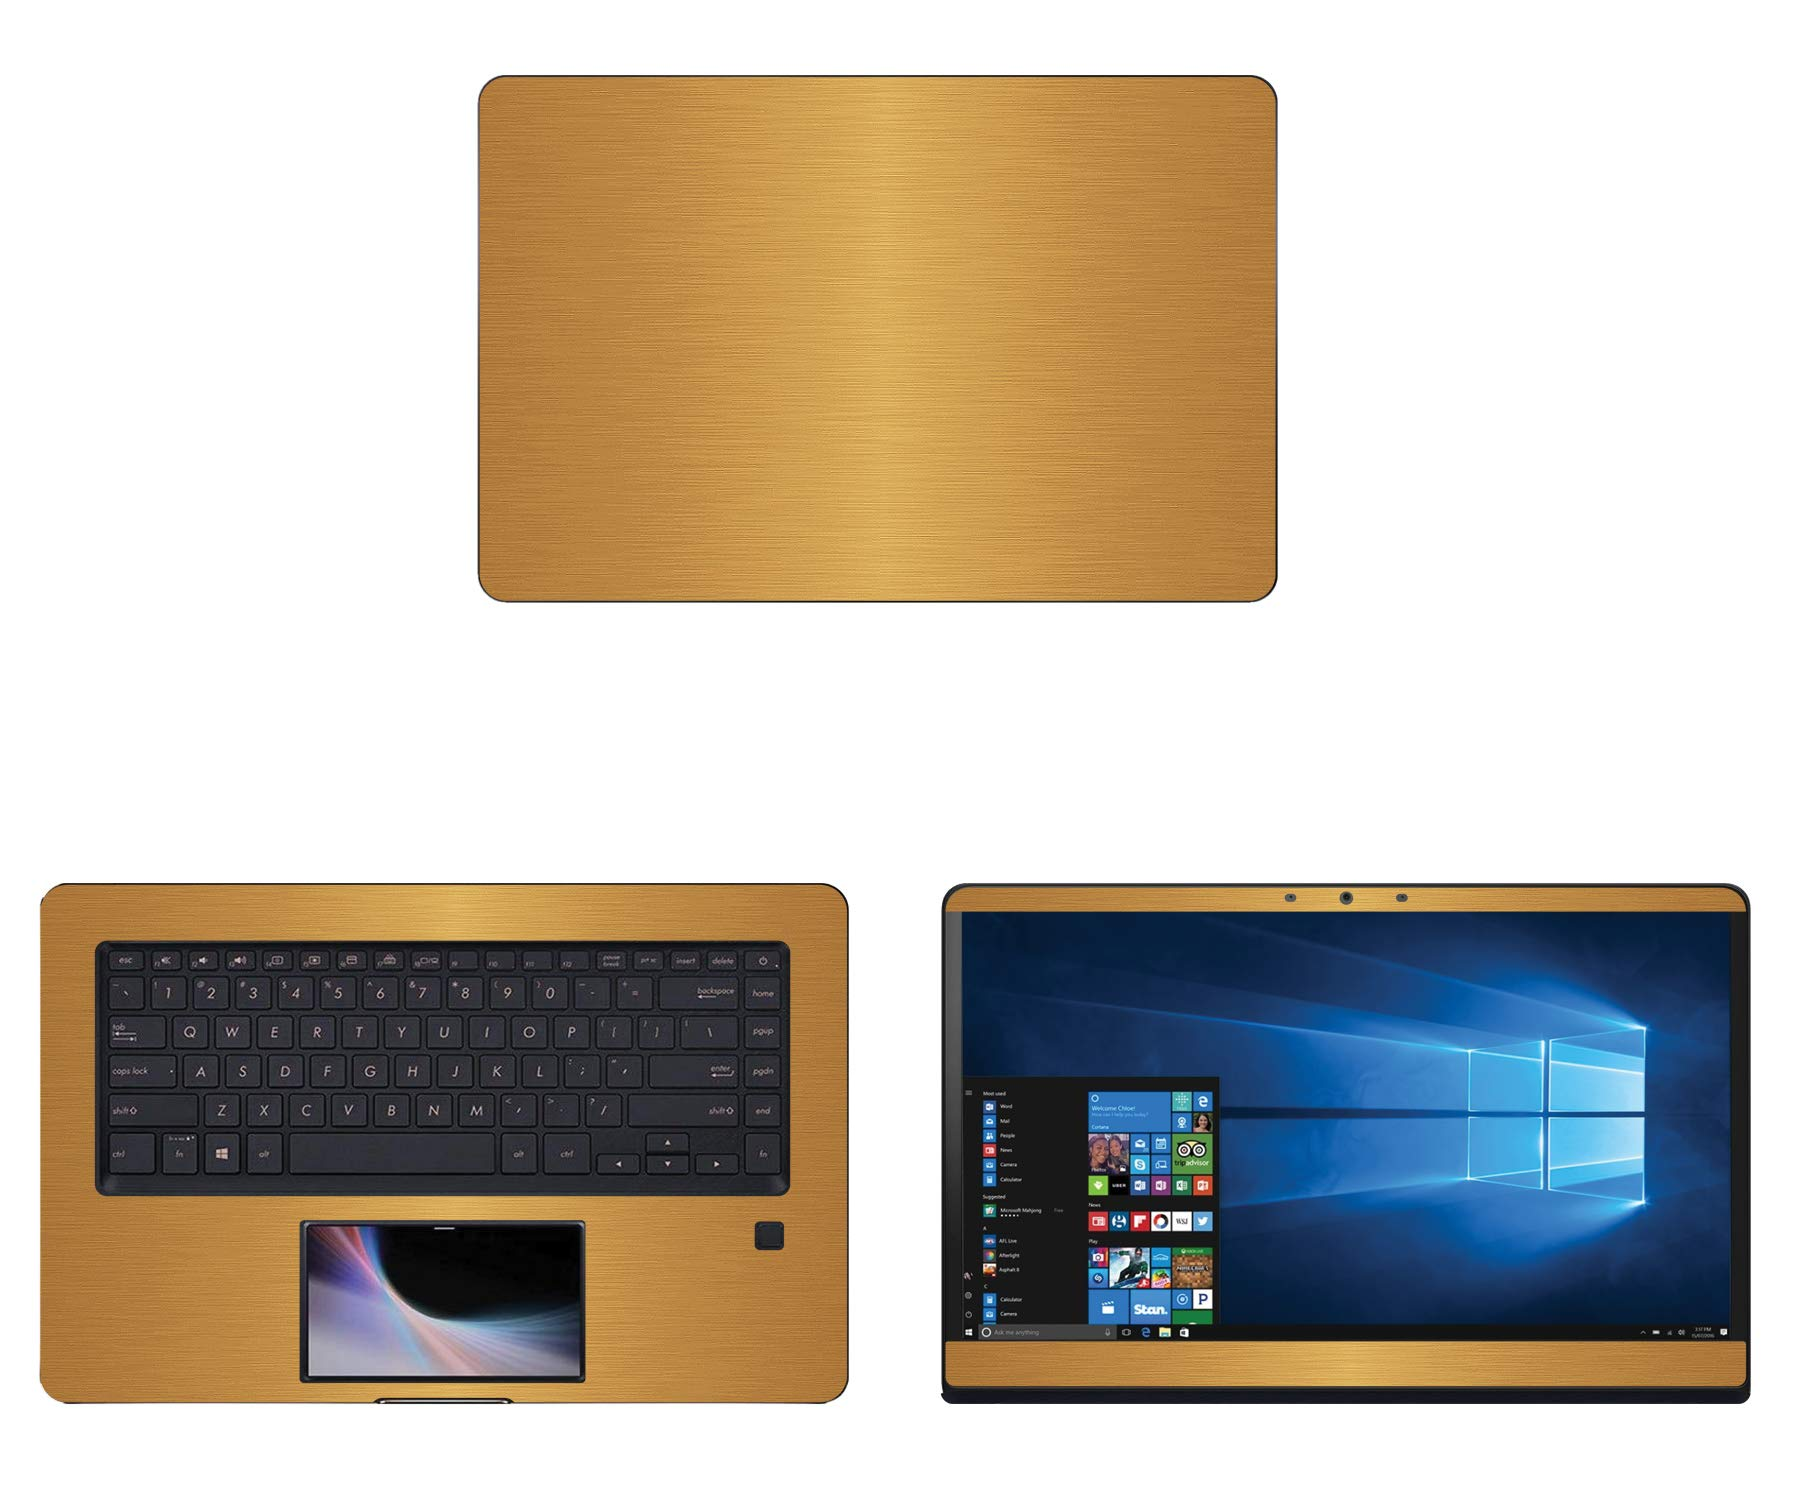 decalrus - Protective Decal for Asus ZenBook Pro UX580GD (15.6'' Screen) Laptop Gold Texture Brushed Aluminum Skin case Cover wrap BAasusZenbkPro15_UX580Gold